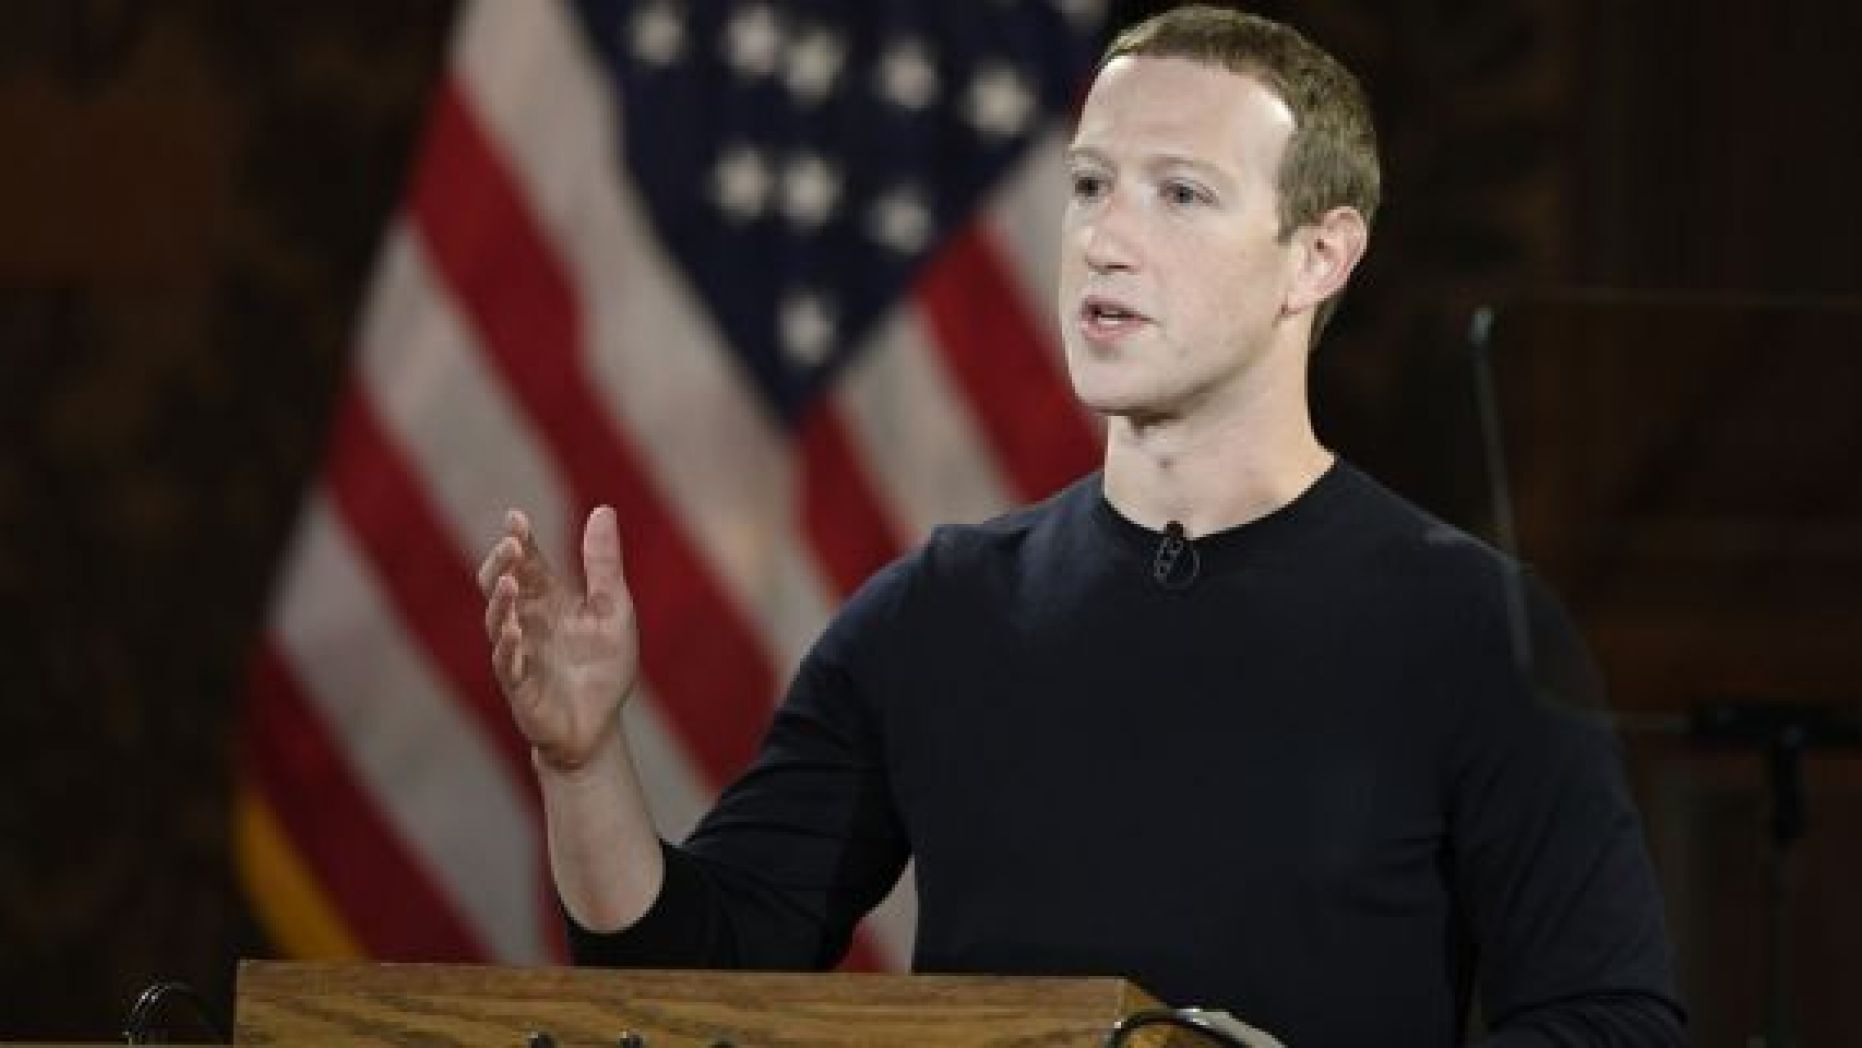 FILE - In this Oct. 17, 2019, file photo Facebook CEO Mark Zuckerberg speaks at Georgetown University in Washington. With just over a year left until the 2020 U.S. presidential election, Facebook is stepping up its efforts to ensure it is not used as a tool to interfere in politics and democracies around the world. Facebook said Monday, Oct. 21, that it will also label state-controlled media as such, label fact -checks more clearly and invest $2 million in media literacy projects. (AP Photo/Nick Wass, File)